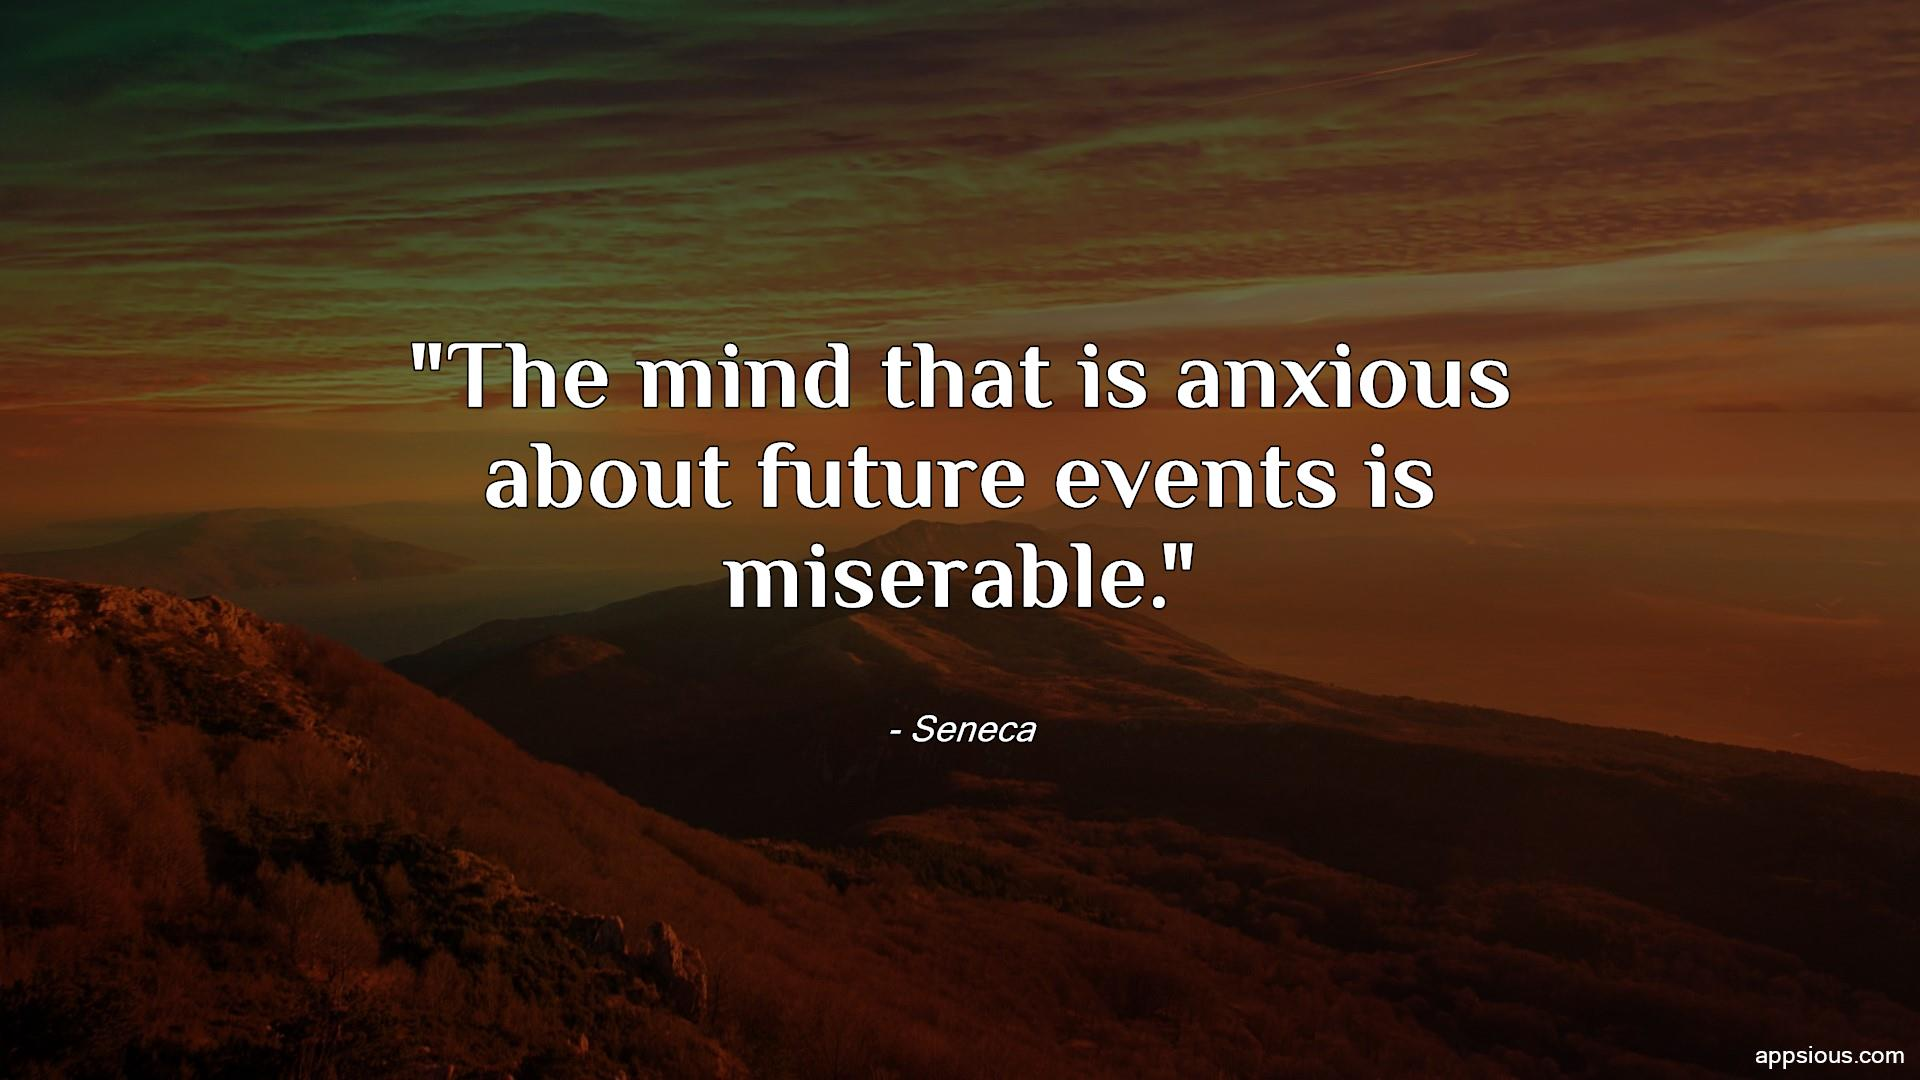 The mind that is anxious about future events is miserable.